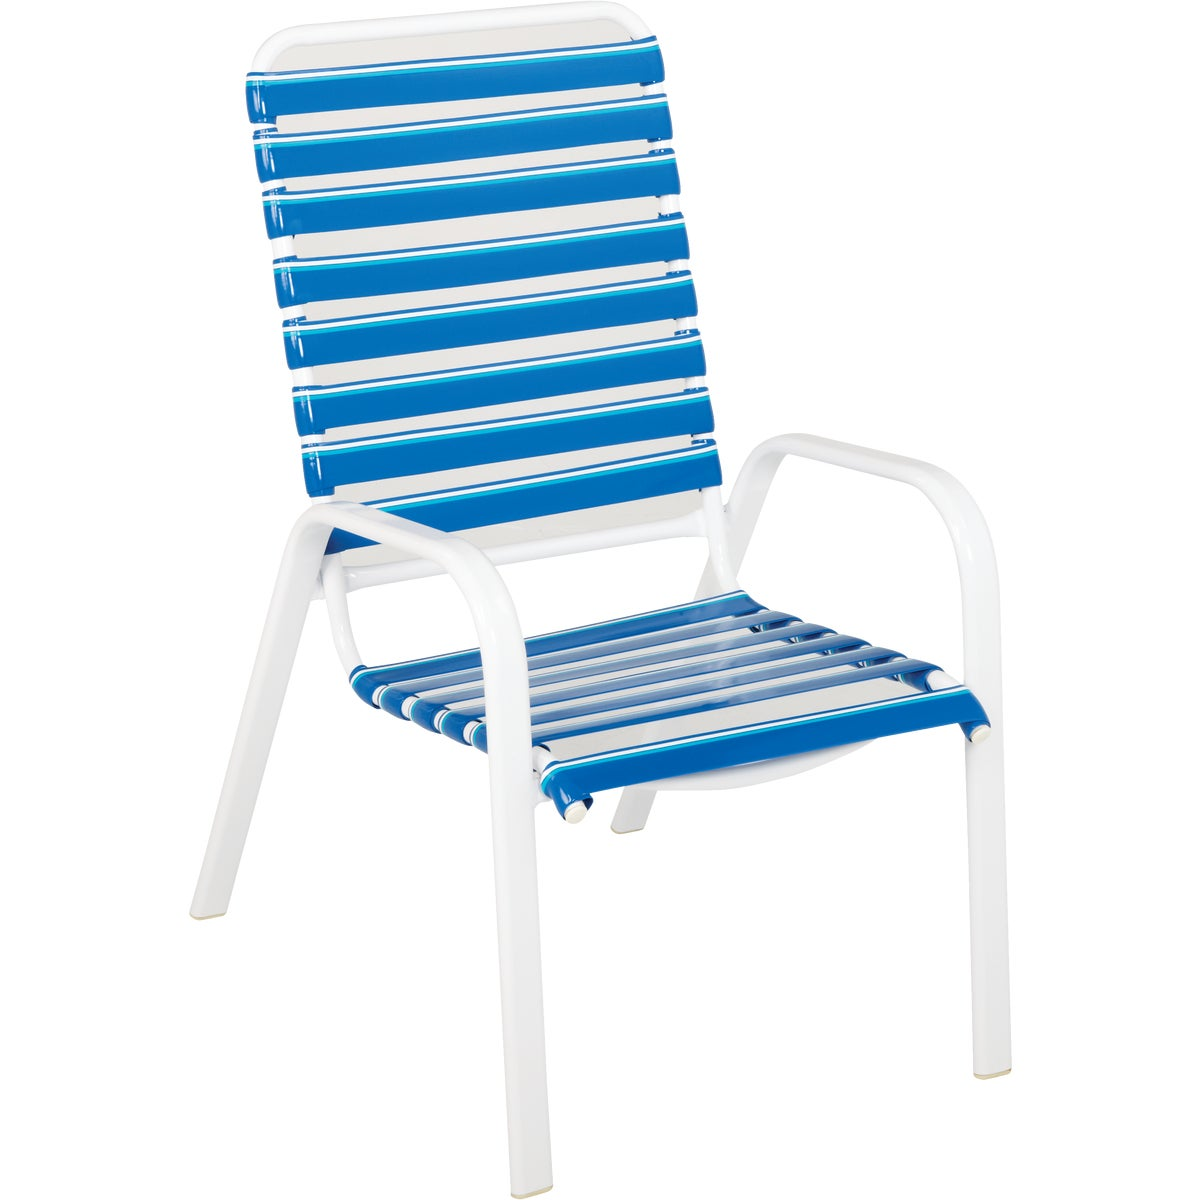 ALUM. PVC STRAP CHAIR - ZA141333-1 by Do it Best